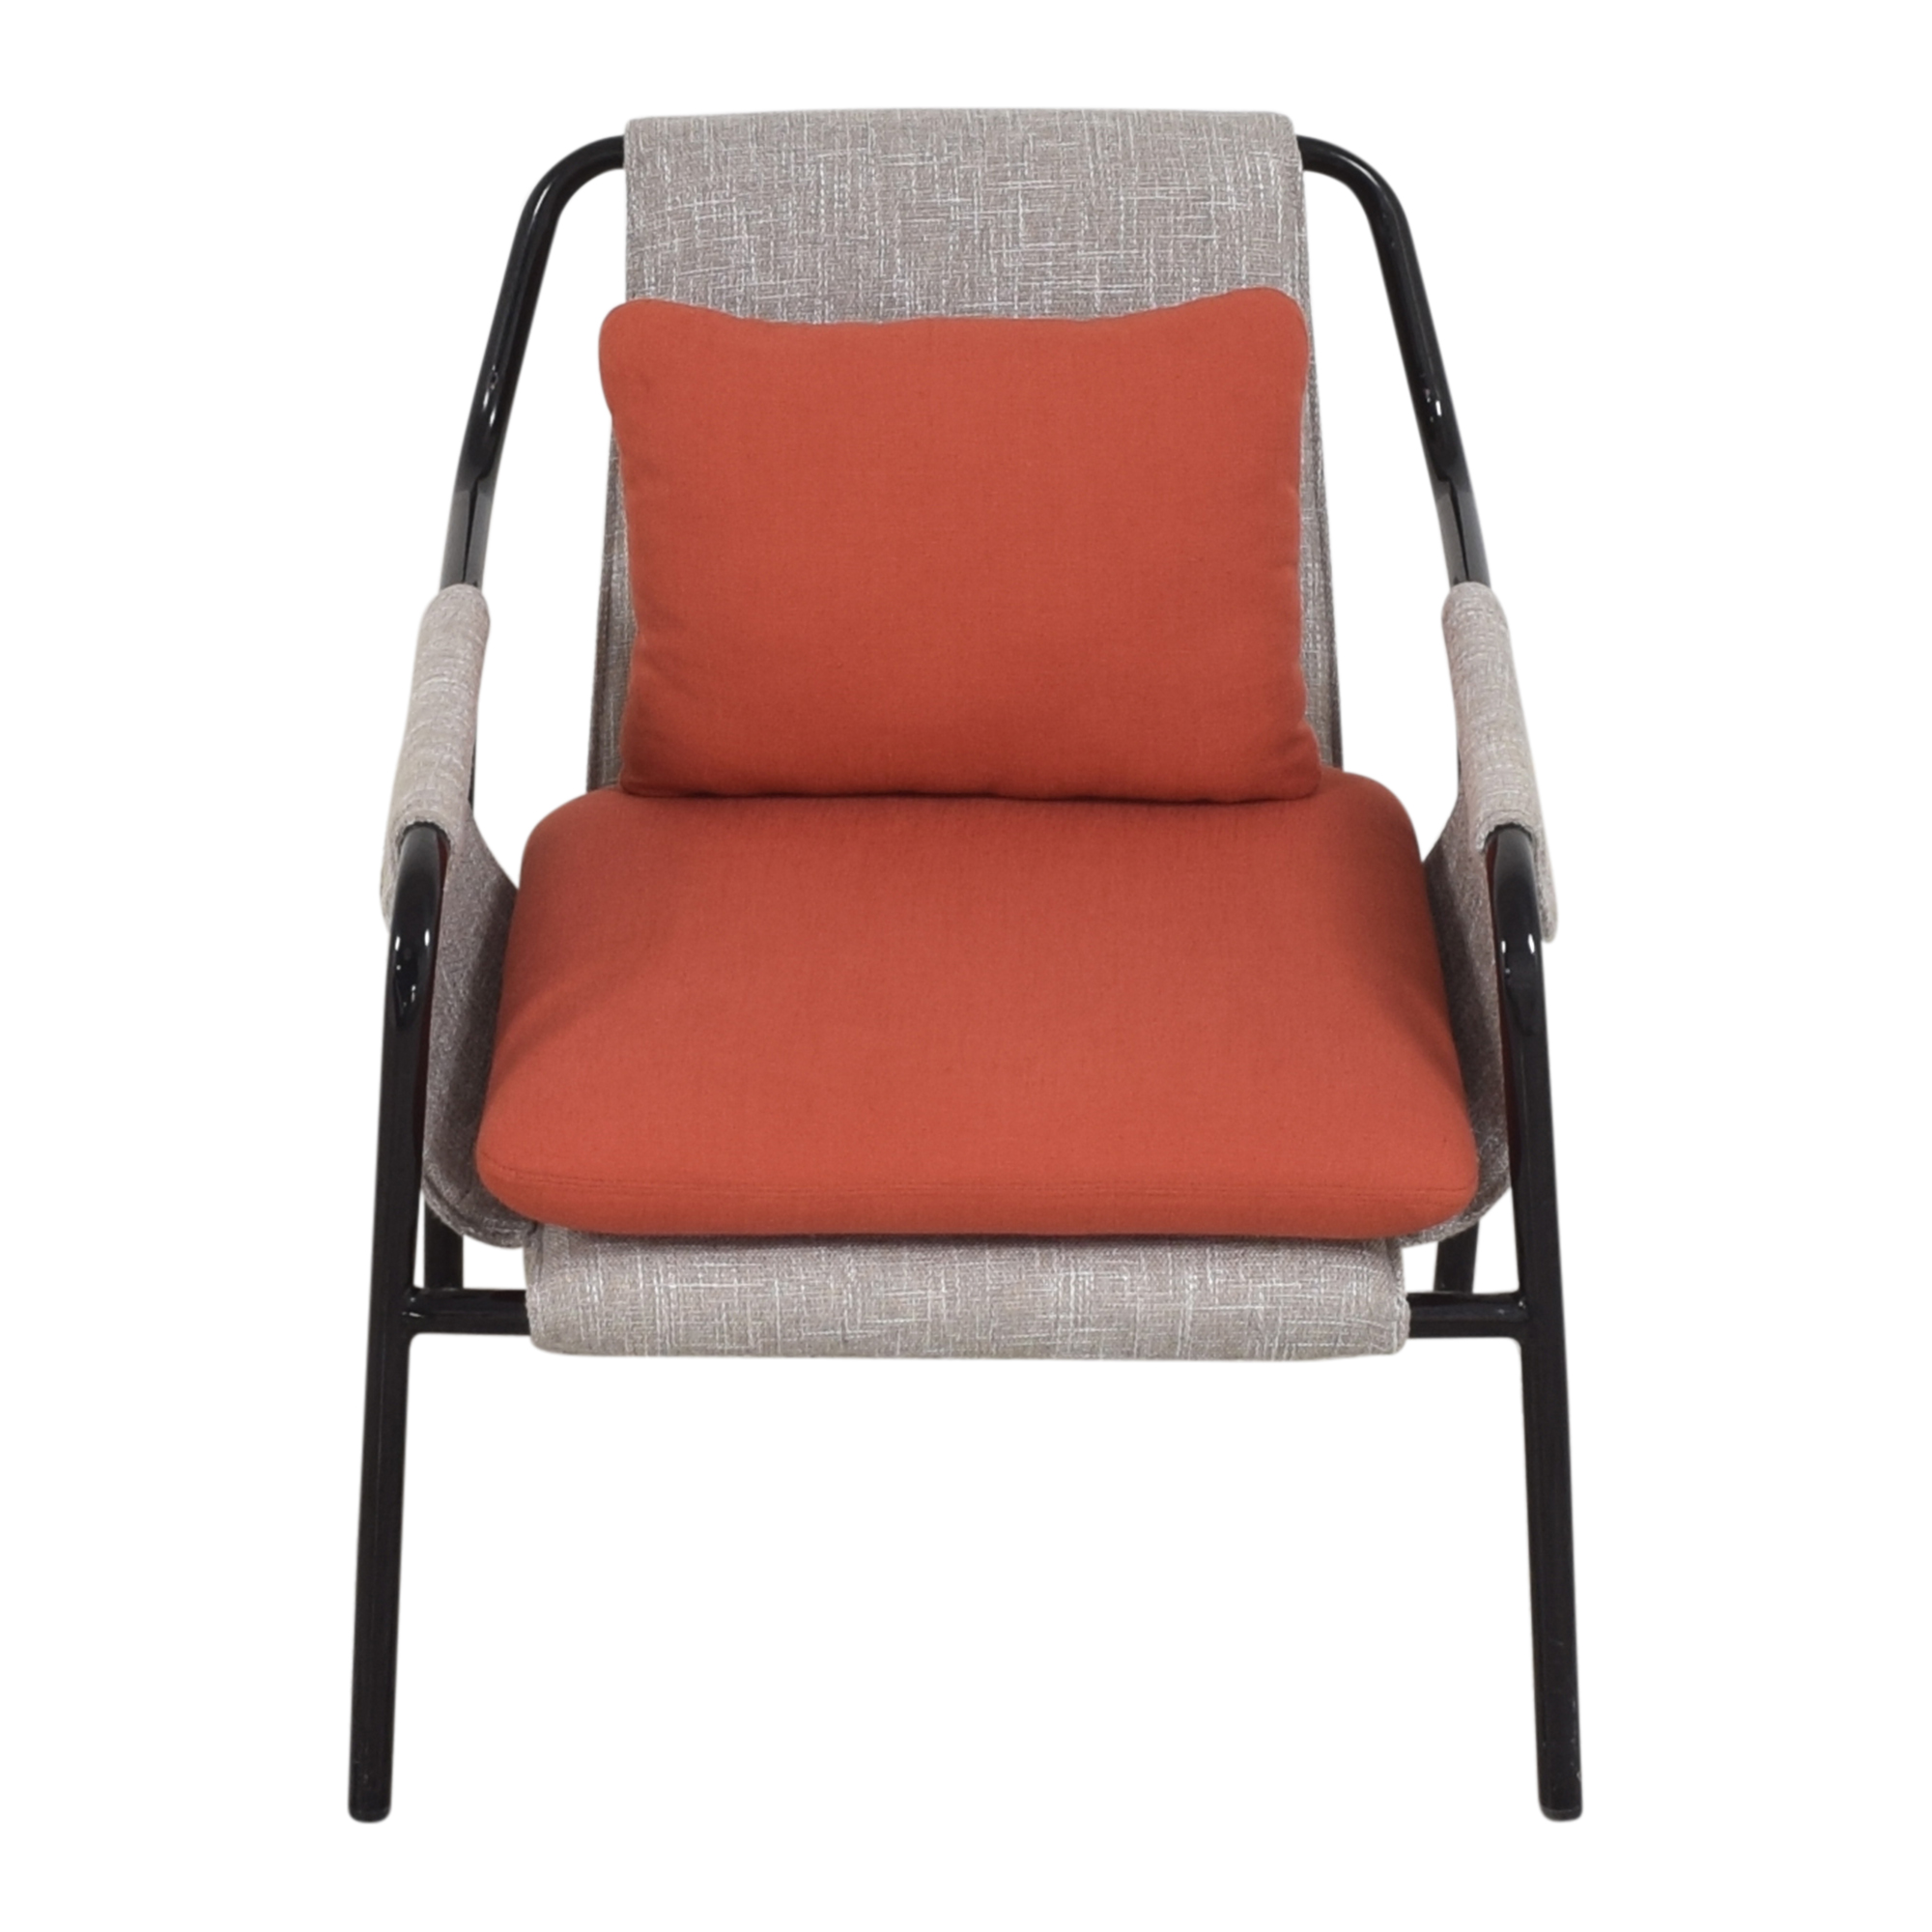 Industry West Industry West Fletcher Chair coupon